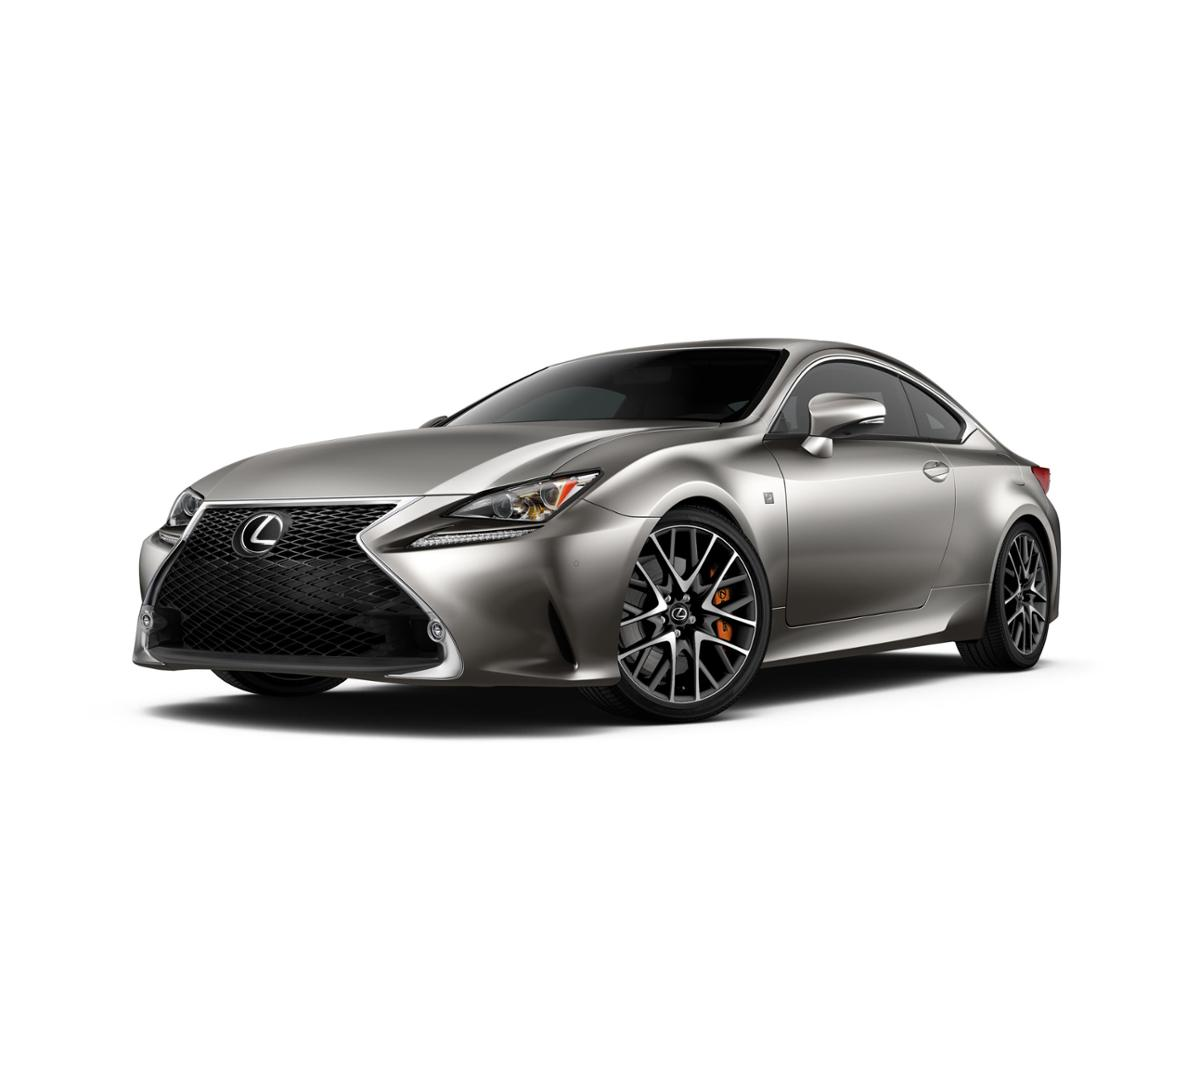 2017 Lexus RC 350 Vehicle Photo in Mission Viejo, CA 92692